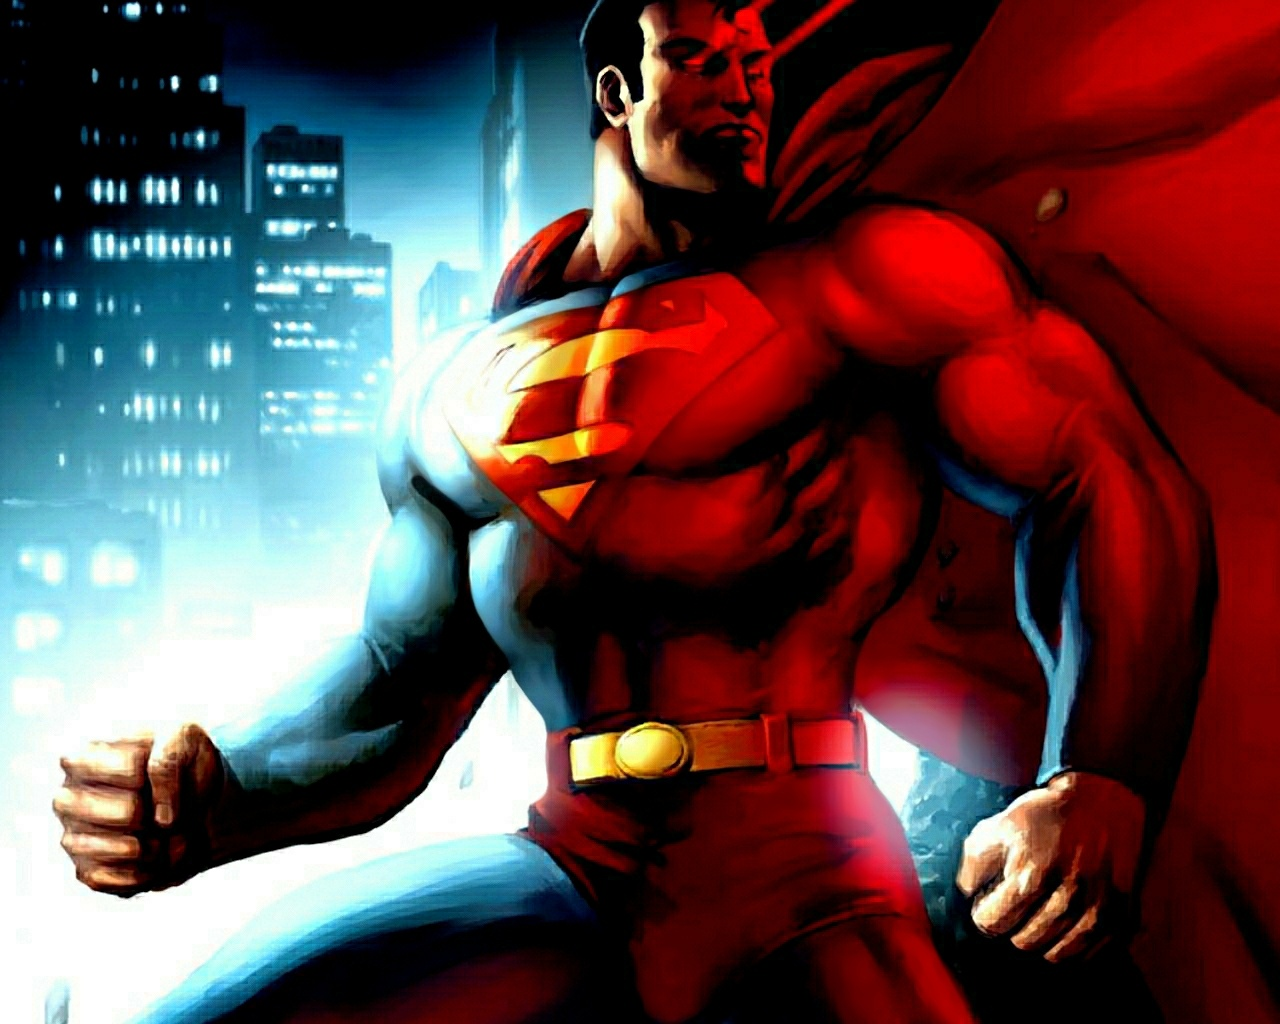 Wallpapers In Full Size Click The Images And Right On Image Choose Save As Then You Will Get This About Man Of Steel